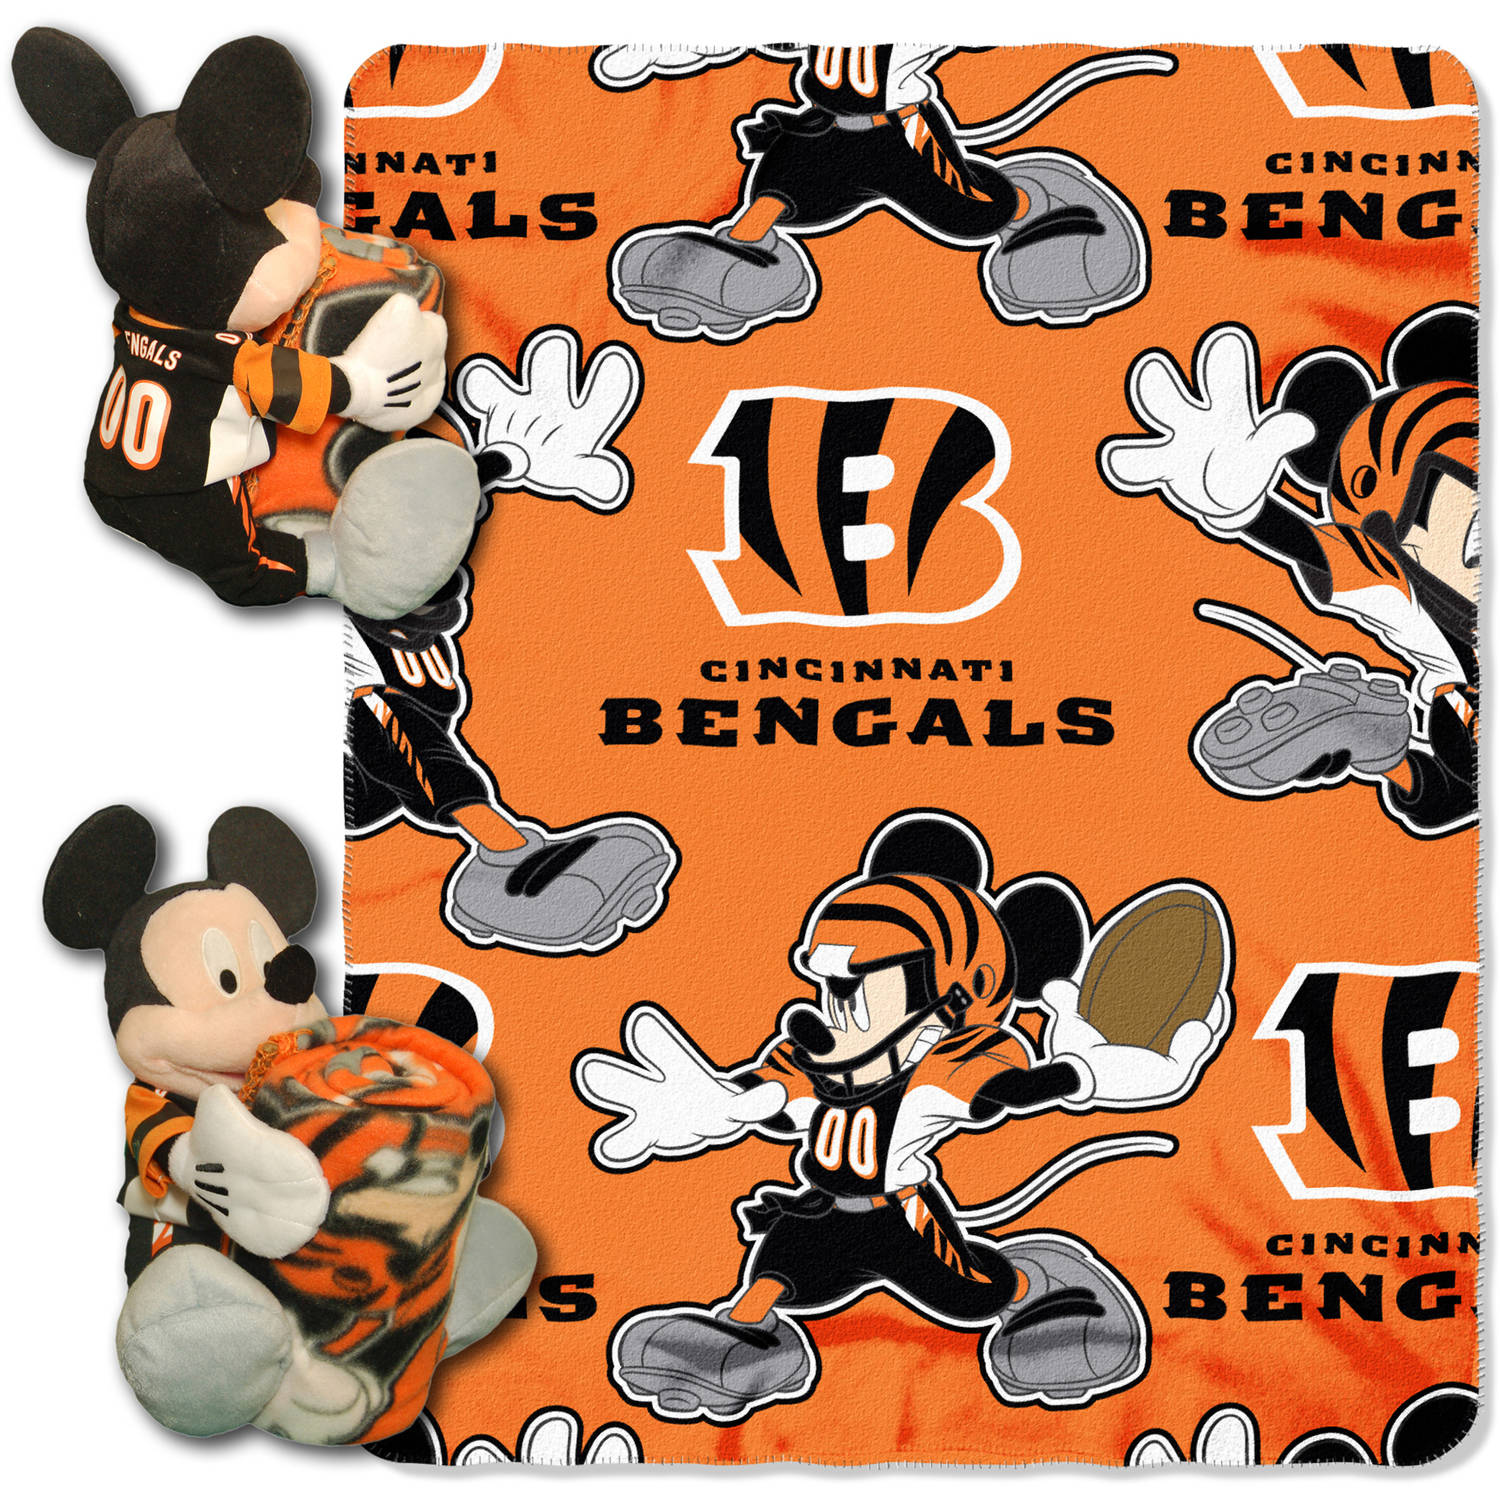 "Disney NFL Cincinnati Bengals Hugger Pillow and 40"" x 50"" Throw Set"